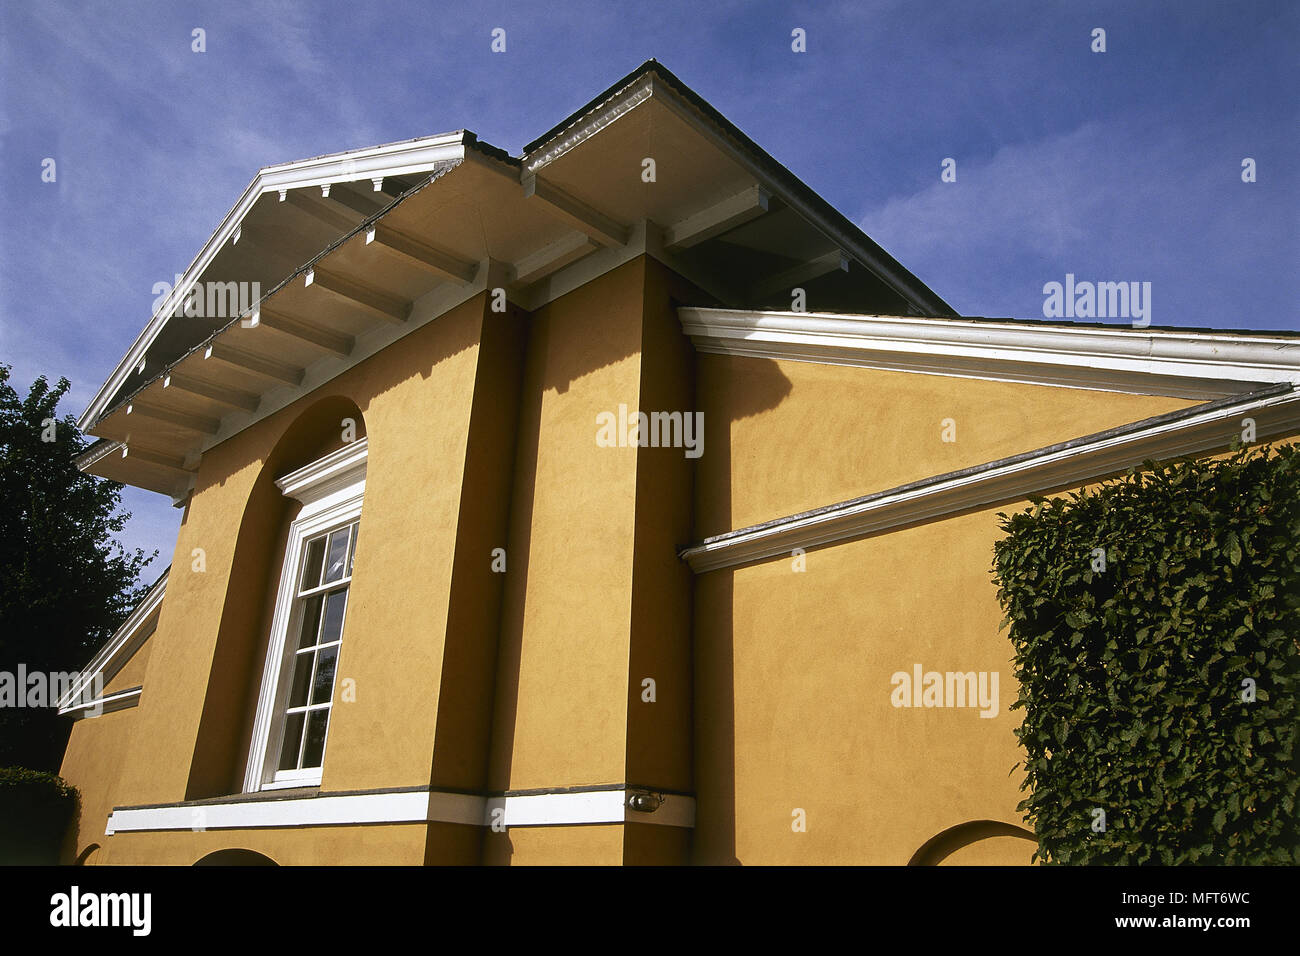 Exterior grand country house  exteriors houses detail classical style pediment - Stock Image